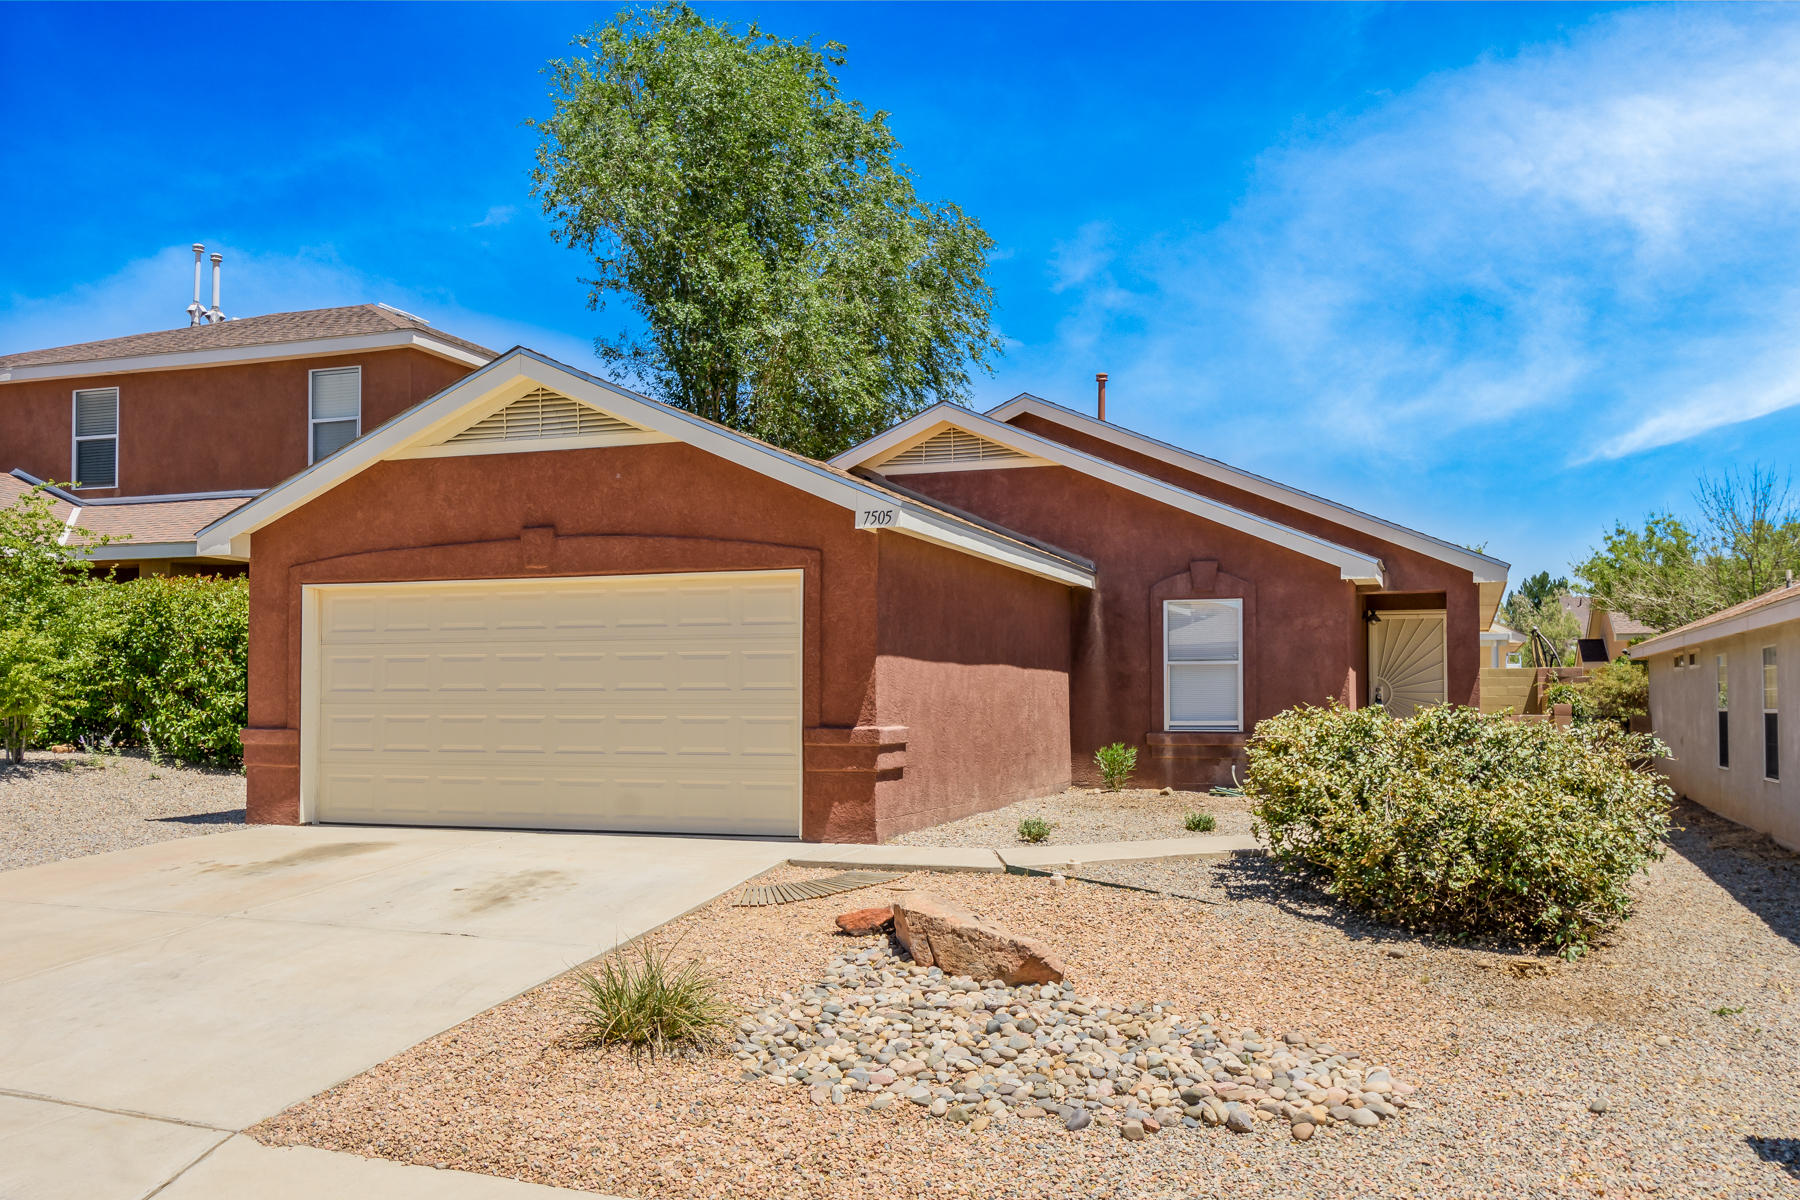 This lovely FOUR bedroom, two bath home is tucked away in beautiful Ventana Ranch just moments  from the community center and pool. Trails and parks are found throughout the neighborhood.   The property features a newer roof (2018), newer Master Cool evapoative cooler,( installed in 2019), new blinds, new light fixtures, and new vinyl flooring in the kitchen, laundry, and bathrooms. The countertops in the kitchens and baths have been beautifully refurbished. Hurry!